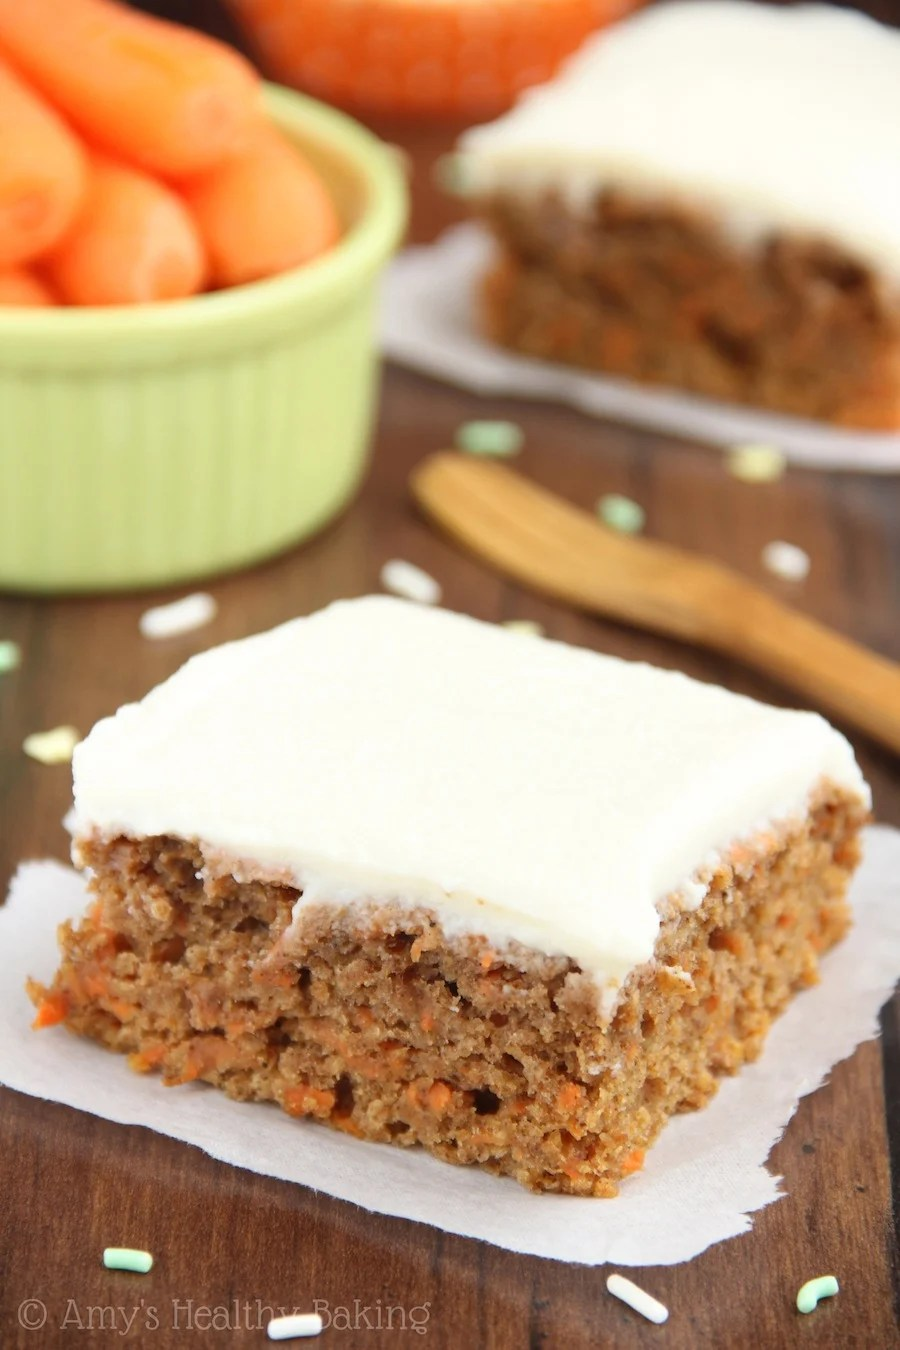 Baking Cakes Classic Carrot Cake